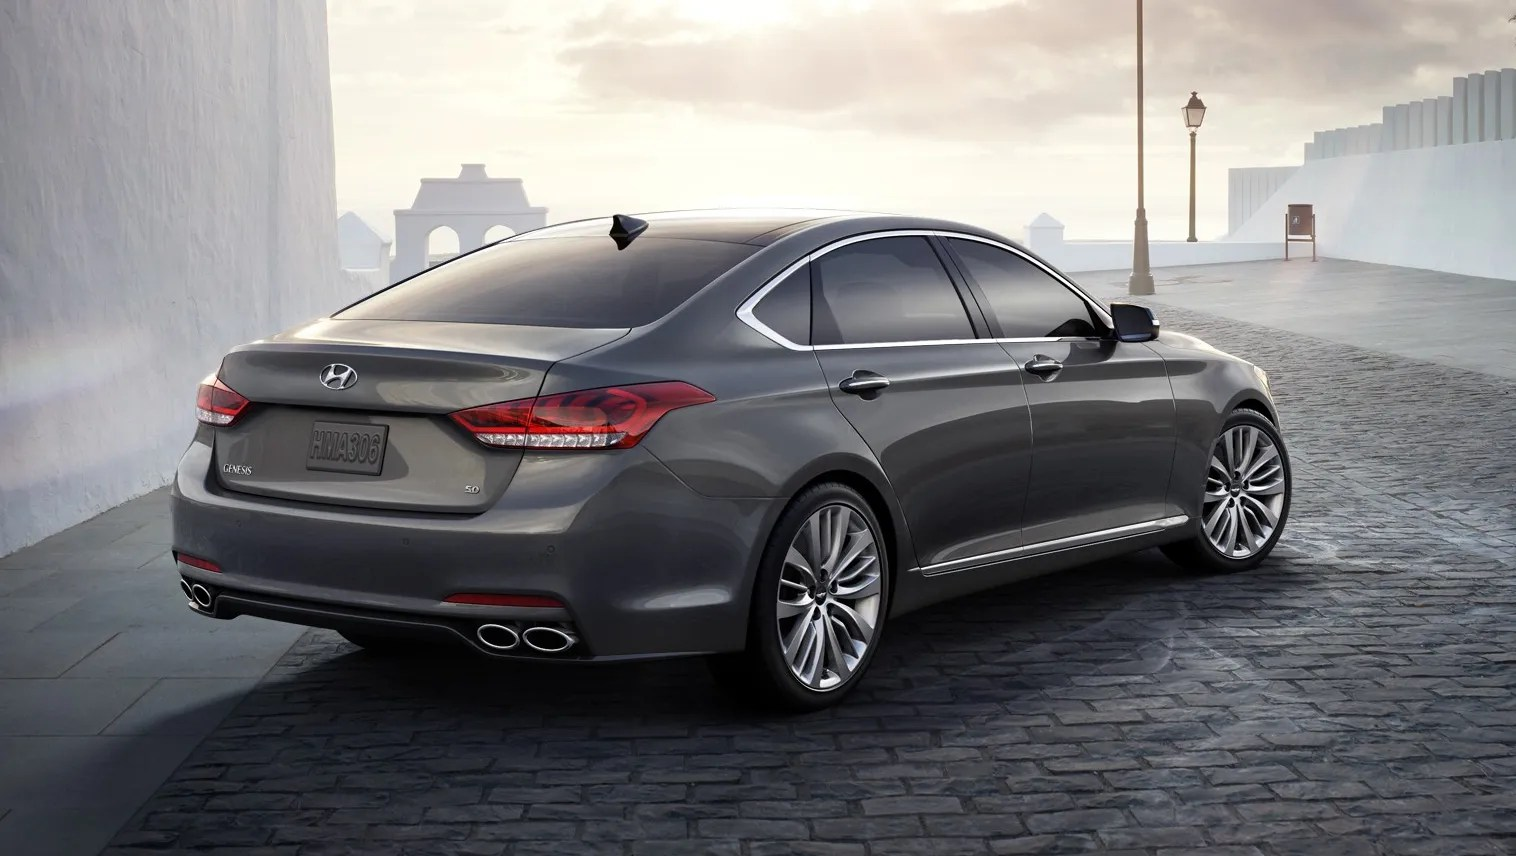 The hyundai motor company owns about a third of kia motors. Auto review: 2015 Hyundai Genesis encourages you to ask